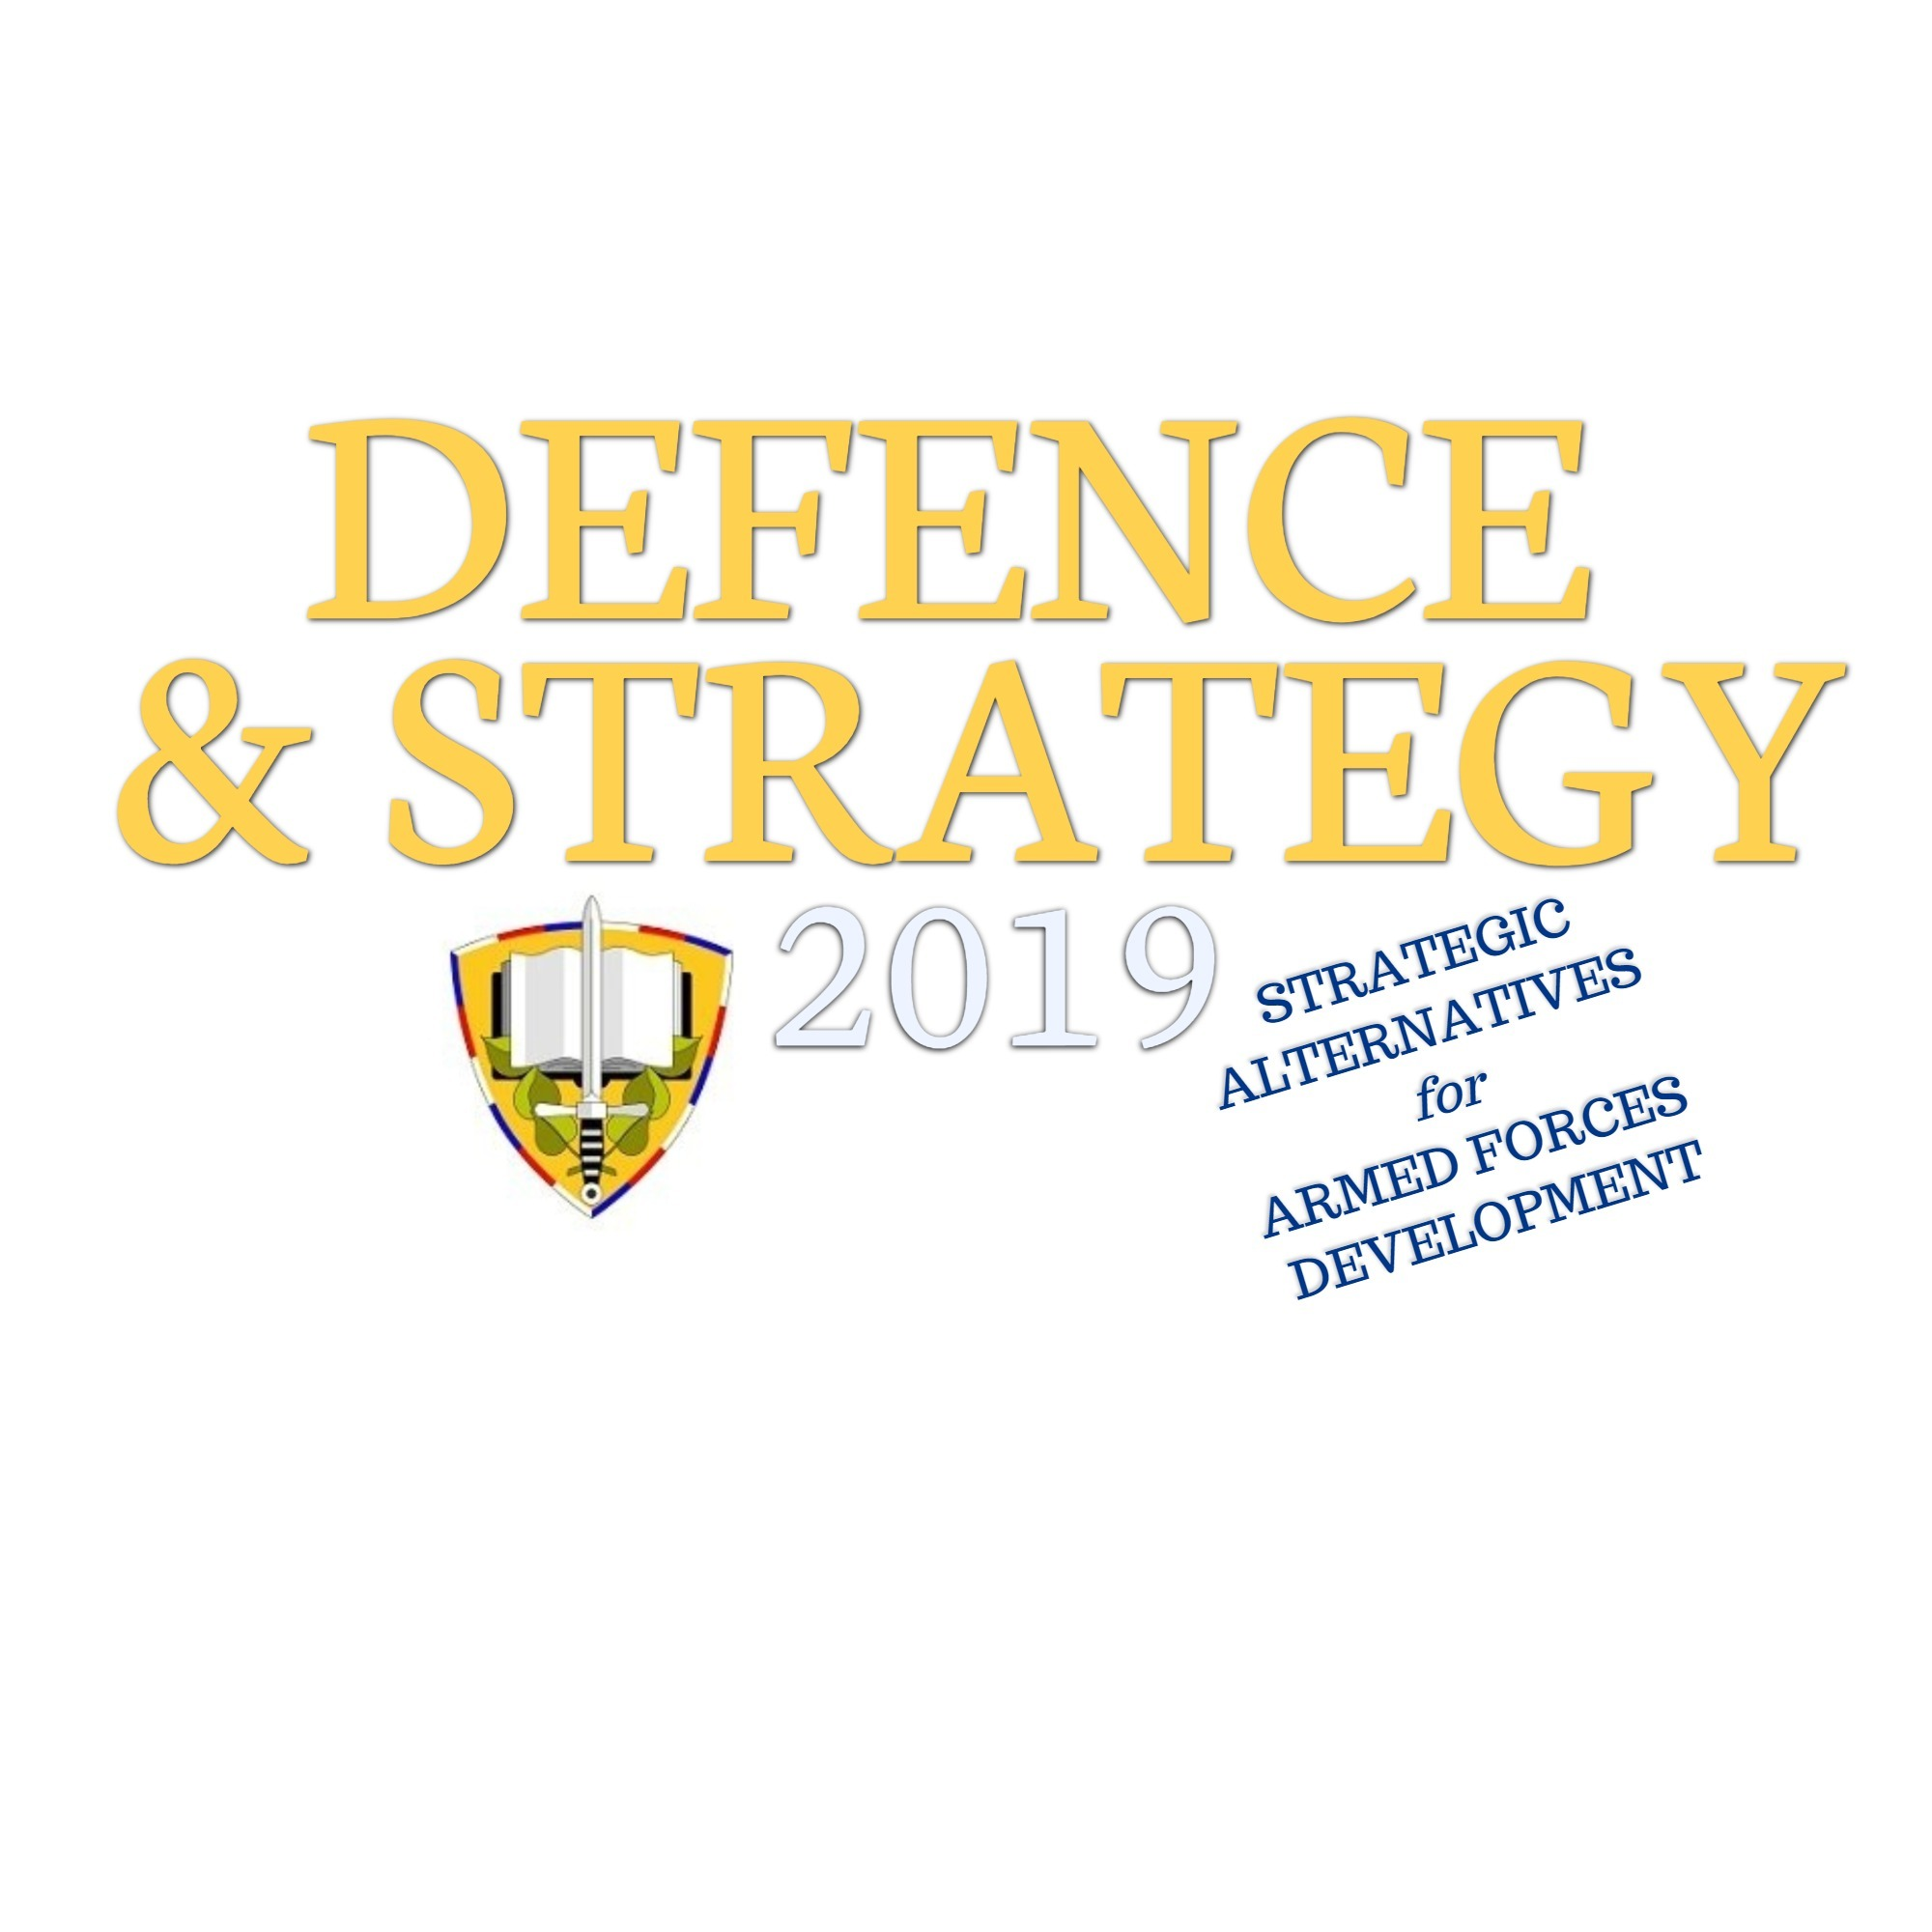 Defence and Etrategy 2019.jpg